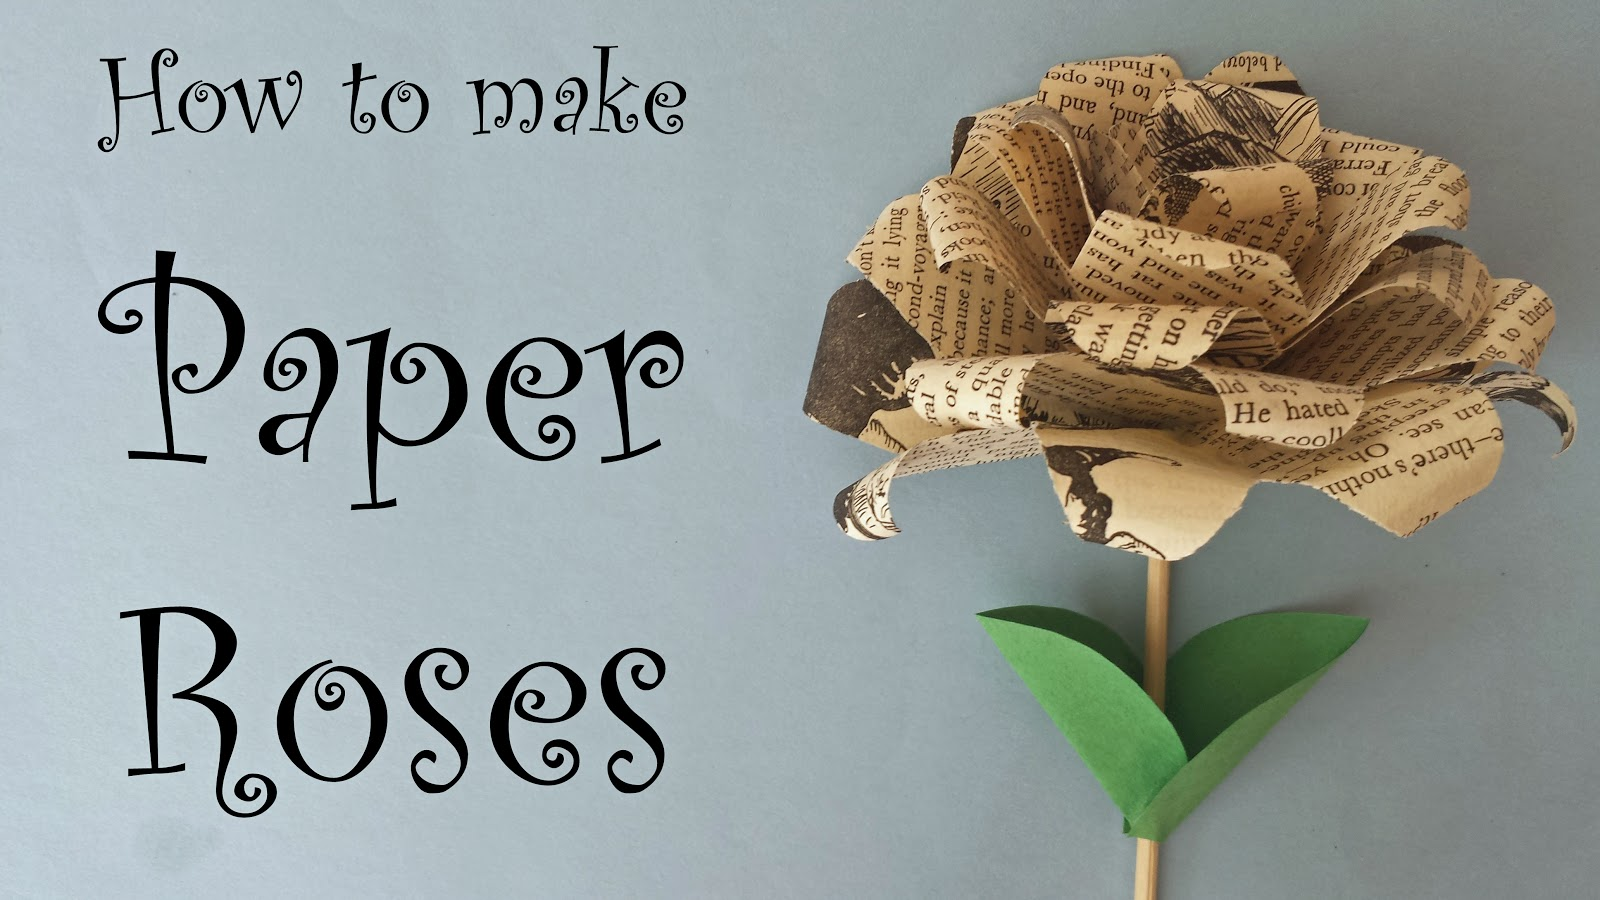 Flowers made from books topsimages the skillful bee paper roses from old book pages jpg 1600x900 flowers made from books mightylinksfo